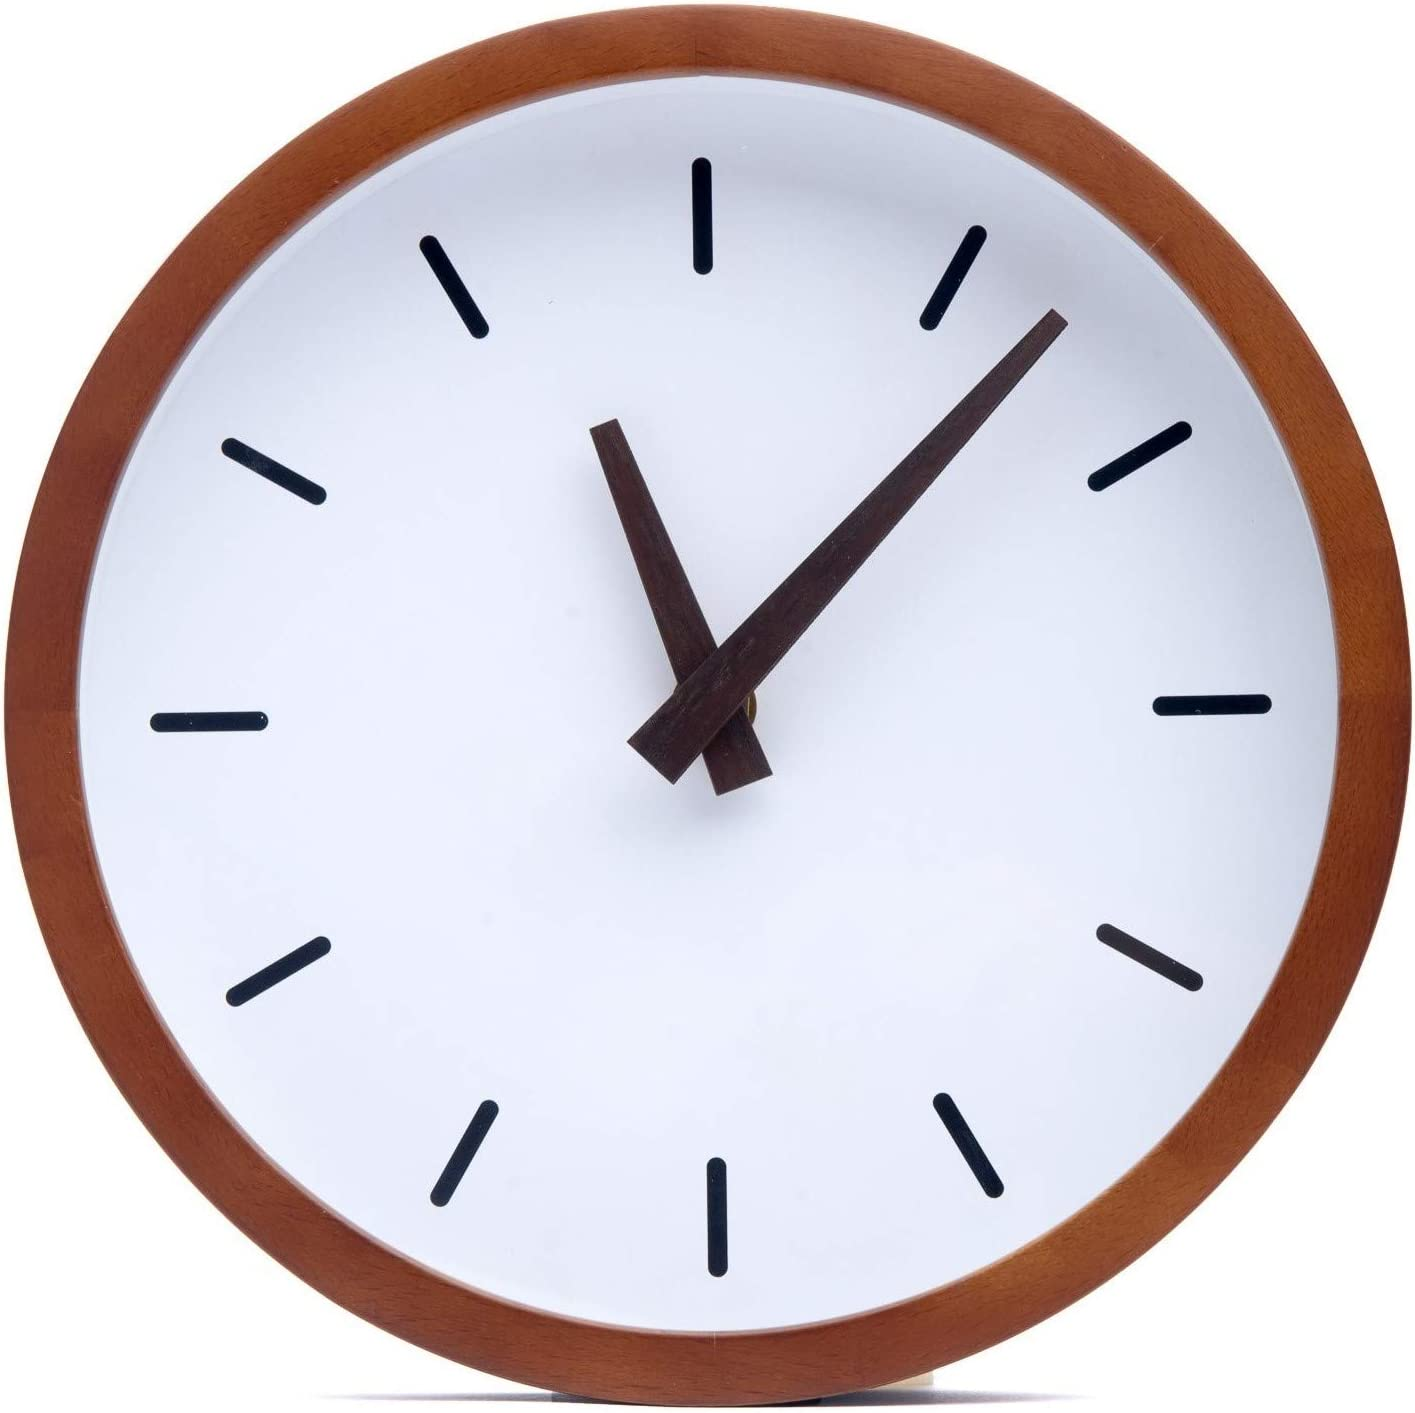 Driini Modern Wood Analog Wall Clock 9 Battery Operated With Silent Sweep Movement Small Decorative Wooden Clocks For Bedrooms Bathroom Kitchen Living Room Office Or Classroom Amazon Ca Home Kitchen